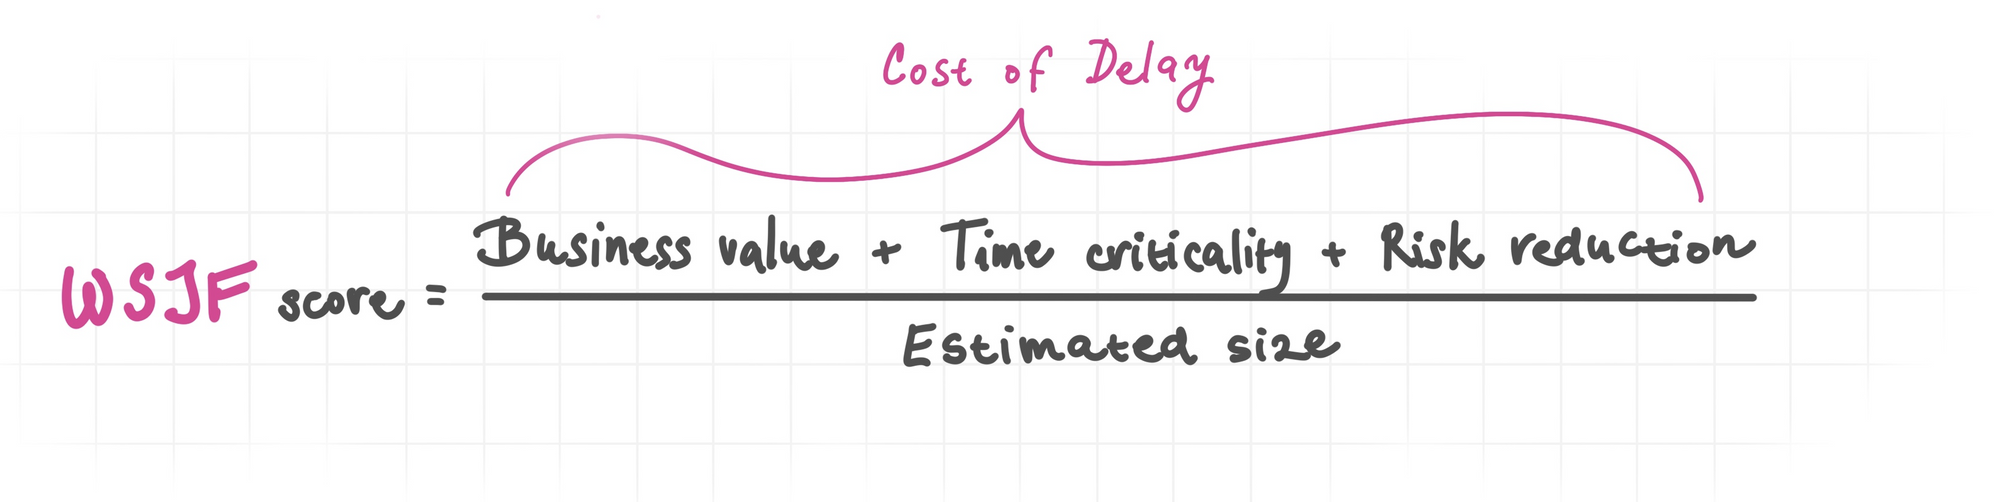 Formula used to calculate WSJF score and Cost of Delay